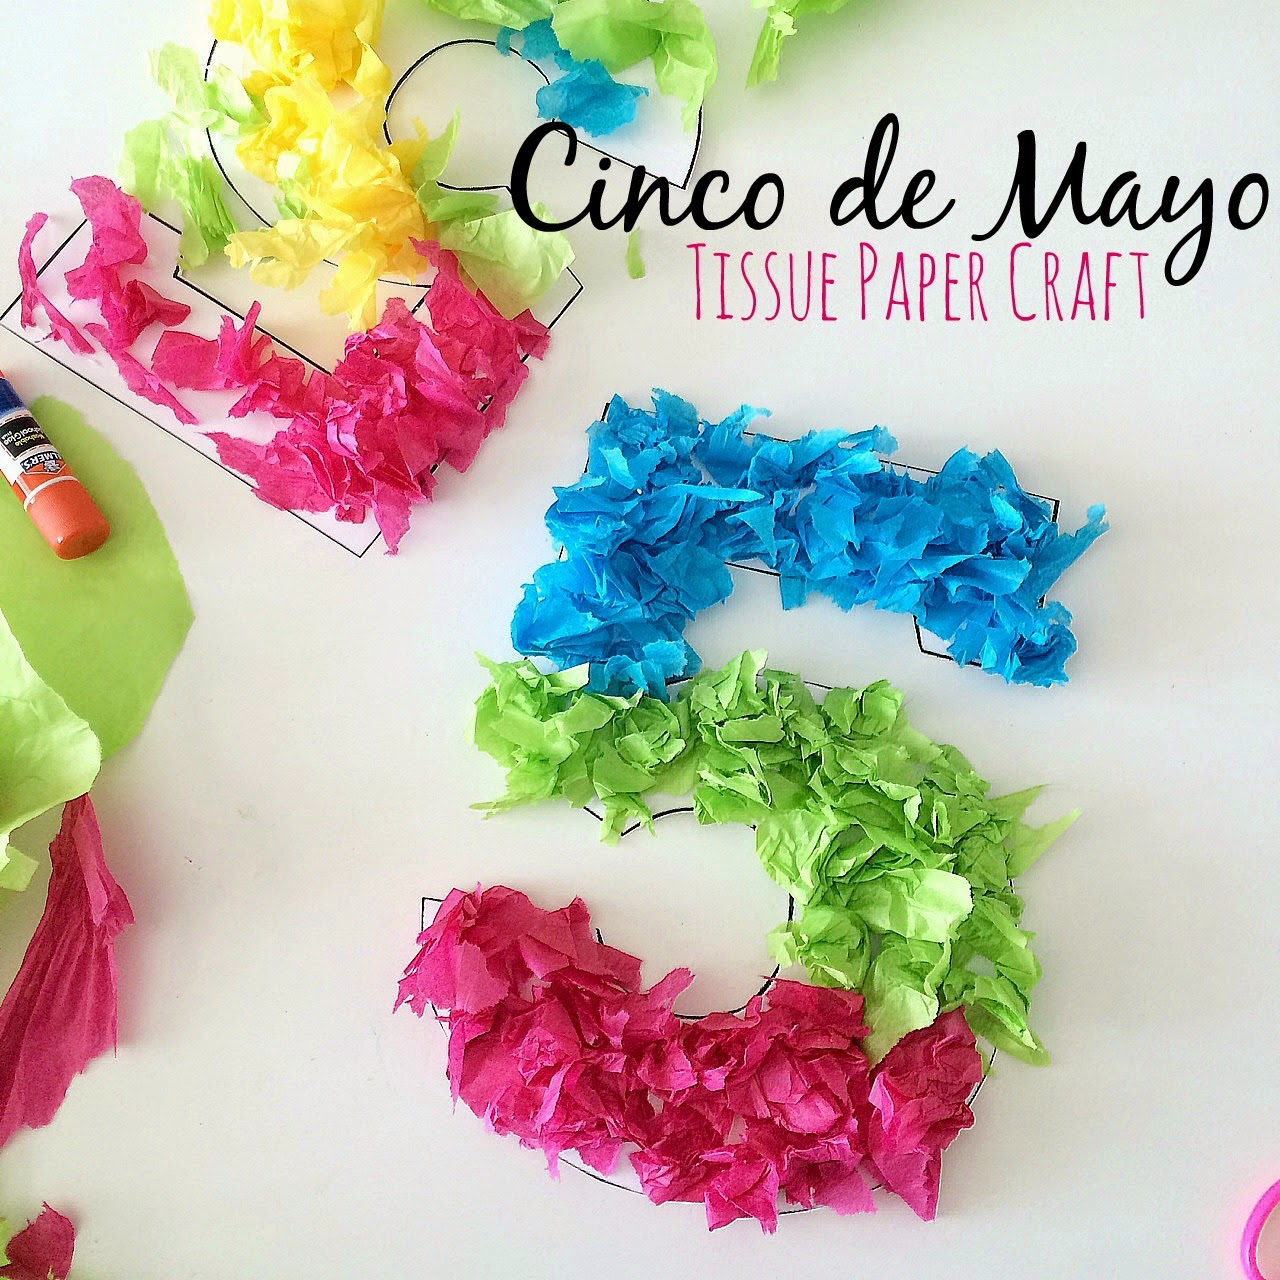 Blue skies ahead cinco de mayo tissue paper craft for Tissue paper for crafts